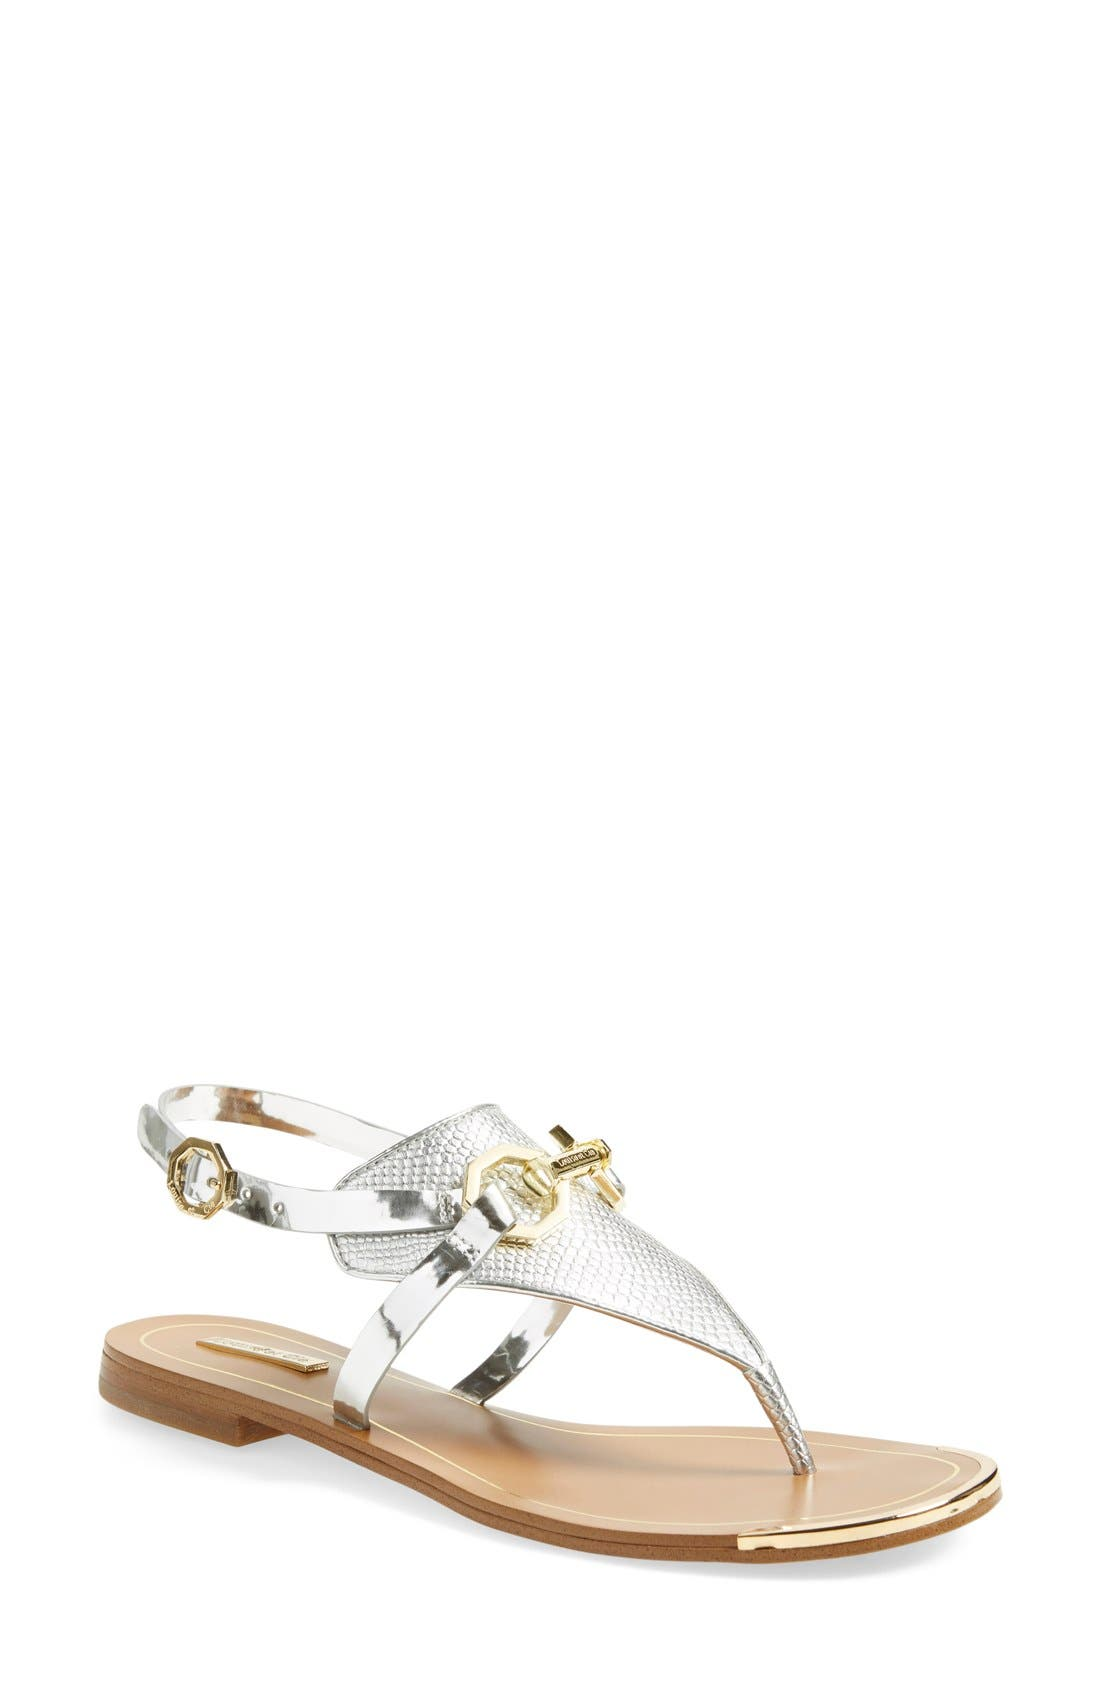 Alternate Image 1 Selected - Louise et Cie 'Rissa' Flat Sandal (Women)